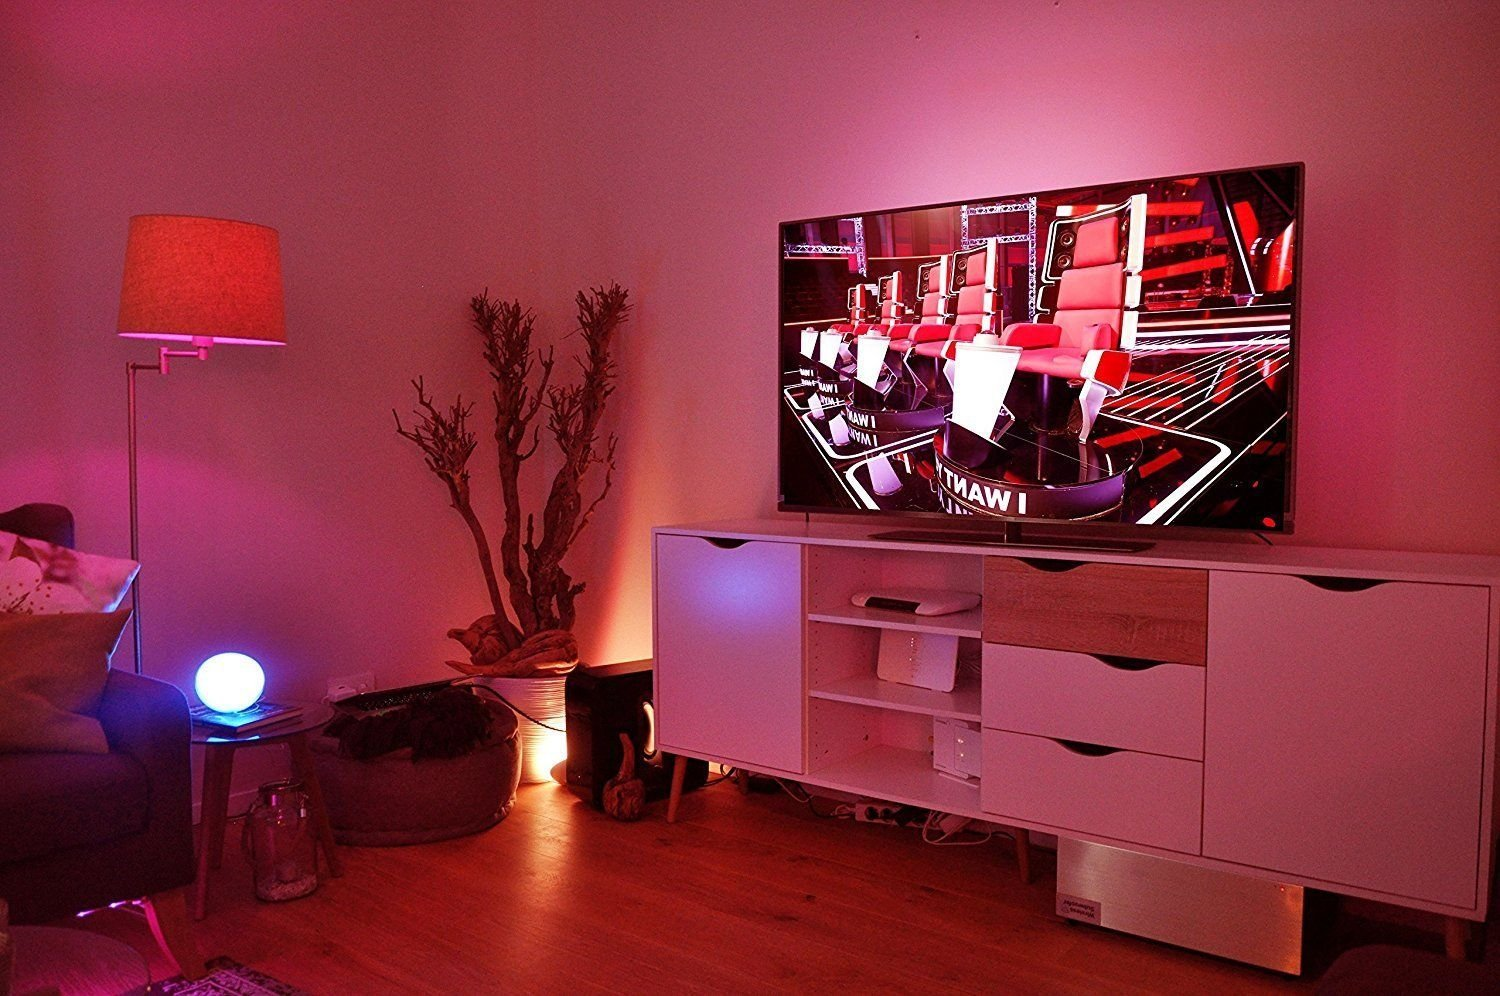 REVIEW: Philips Hue - nerdstuff.info